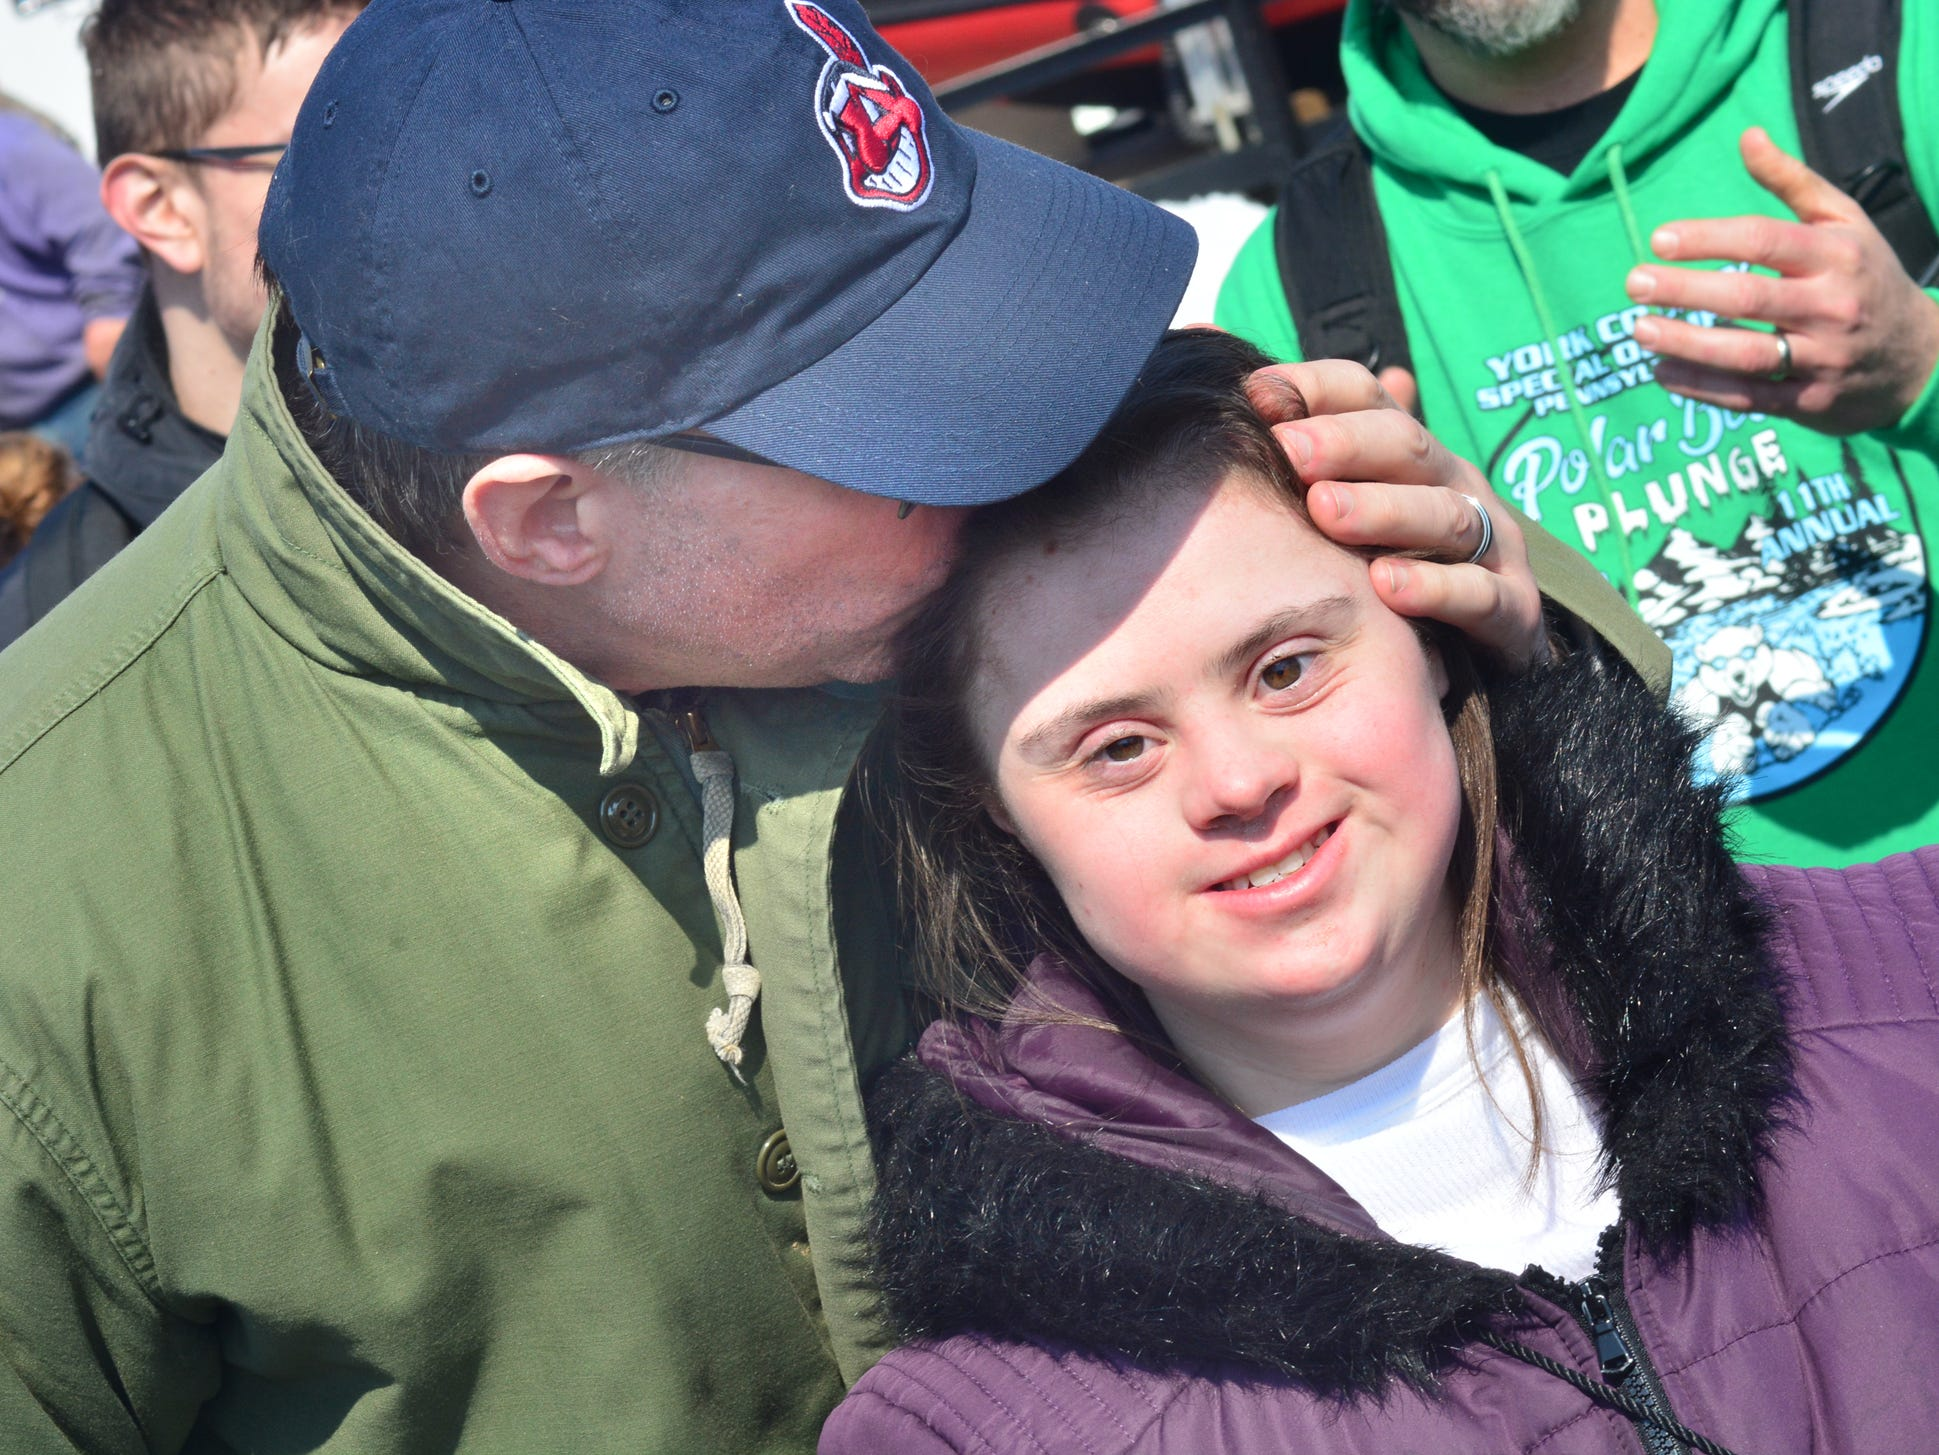 Ed Mundorf of New Salem gives his daughter Alexis a kiss prior to her leading a wave of plungers into the water. Law Enforcement for Special Olympics PA Polar Plunge was Saturday at noon at the Wrightsville House with people hitting the 34-degree water to raise money for Special Olympics.